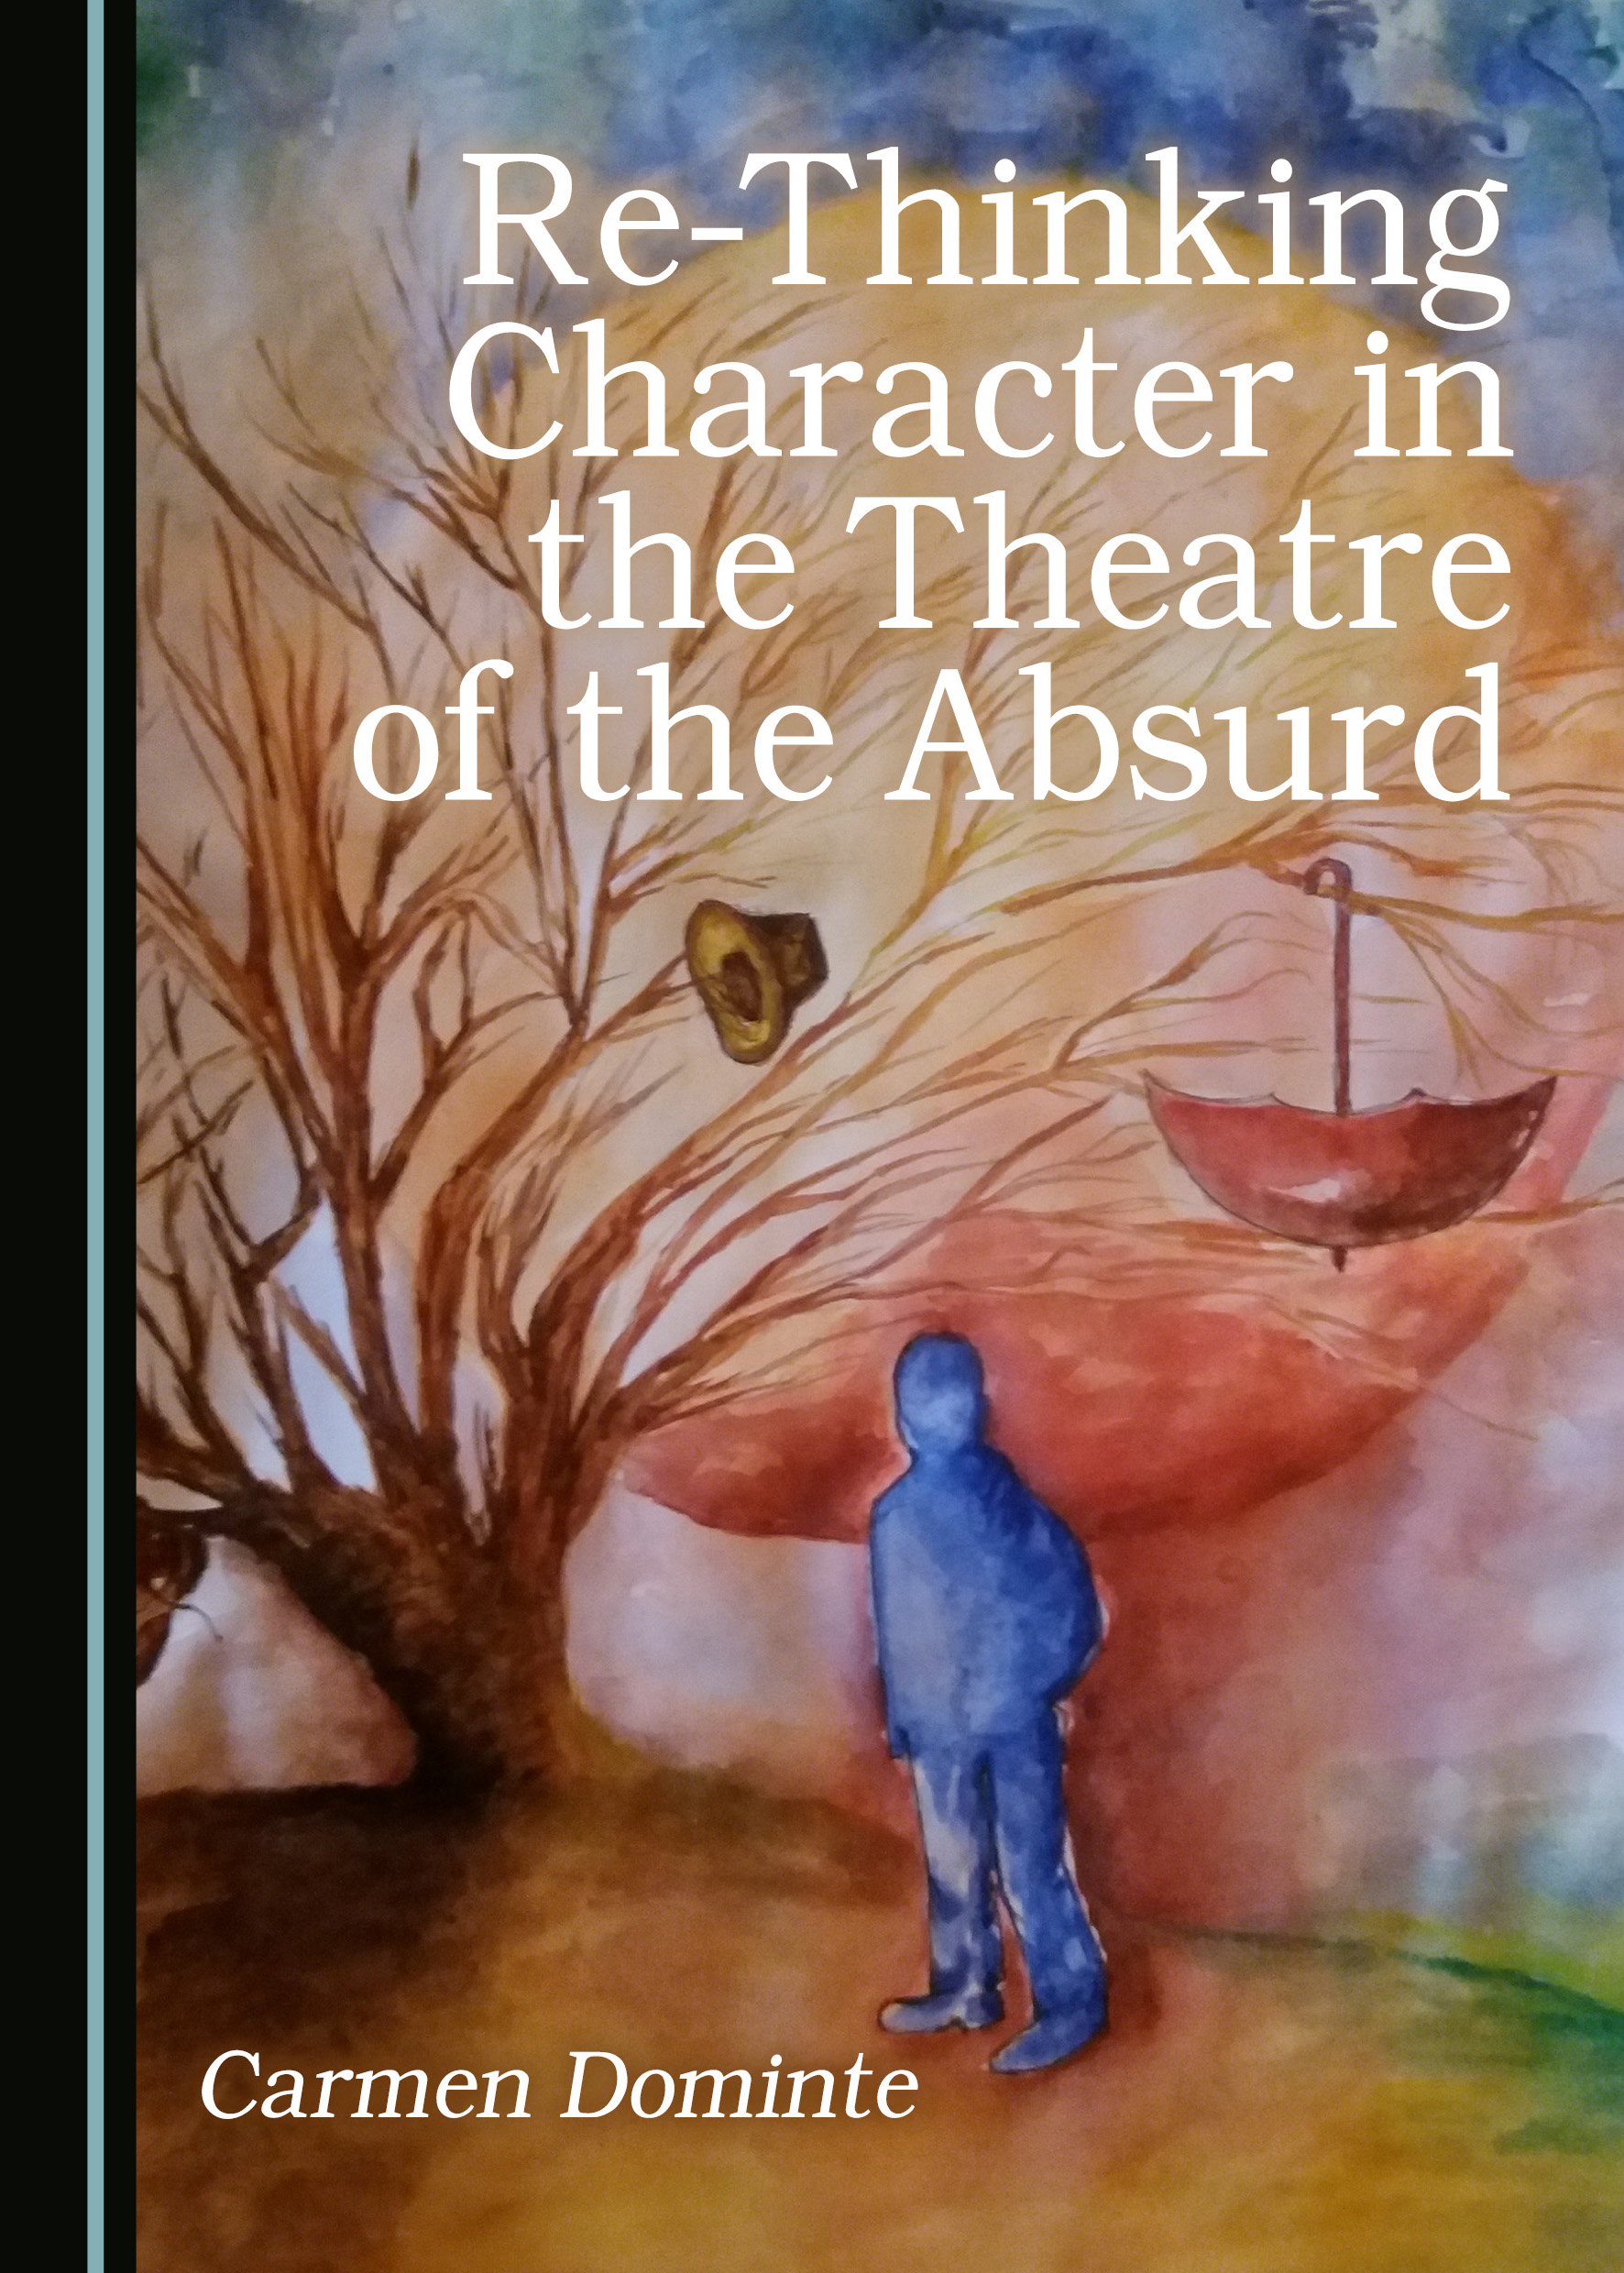 Re-Thinking Character in the Theatre of the Absurd